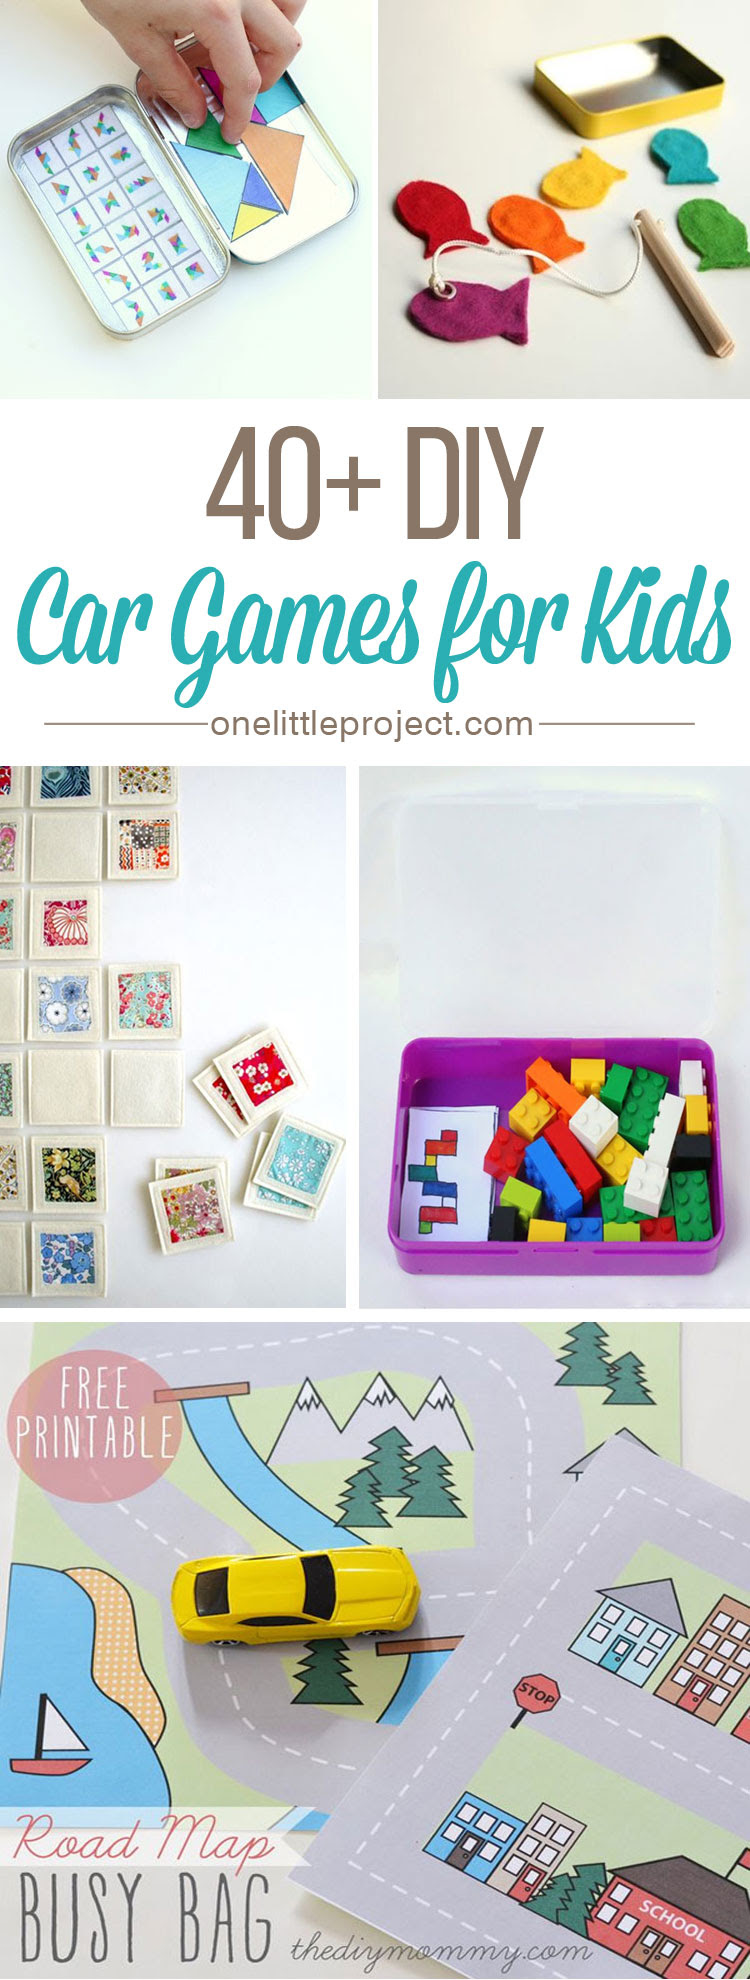 http://onelittleproject.com/car-games-for-kids/